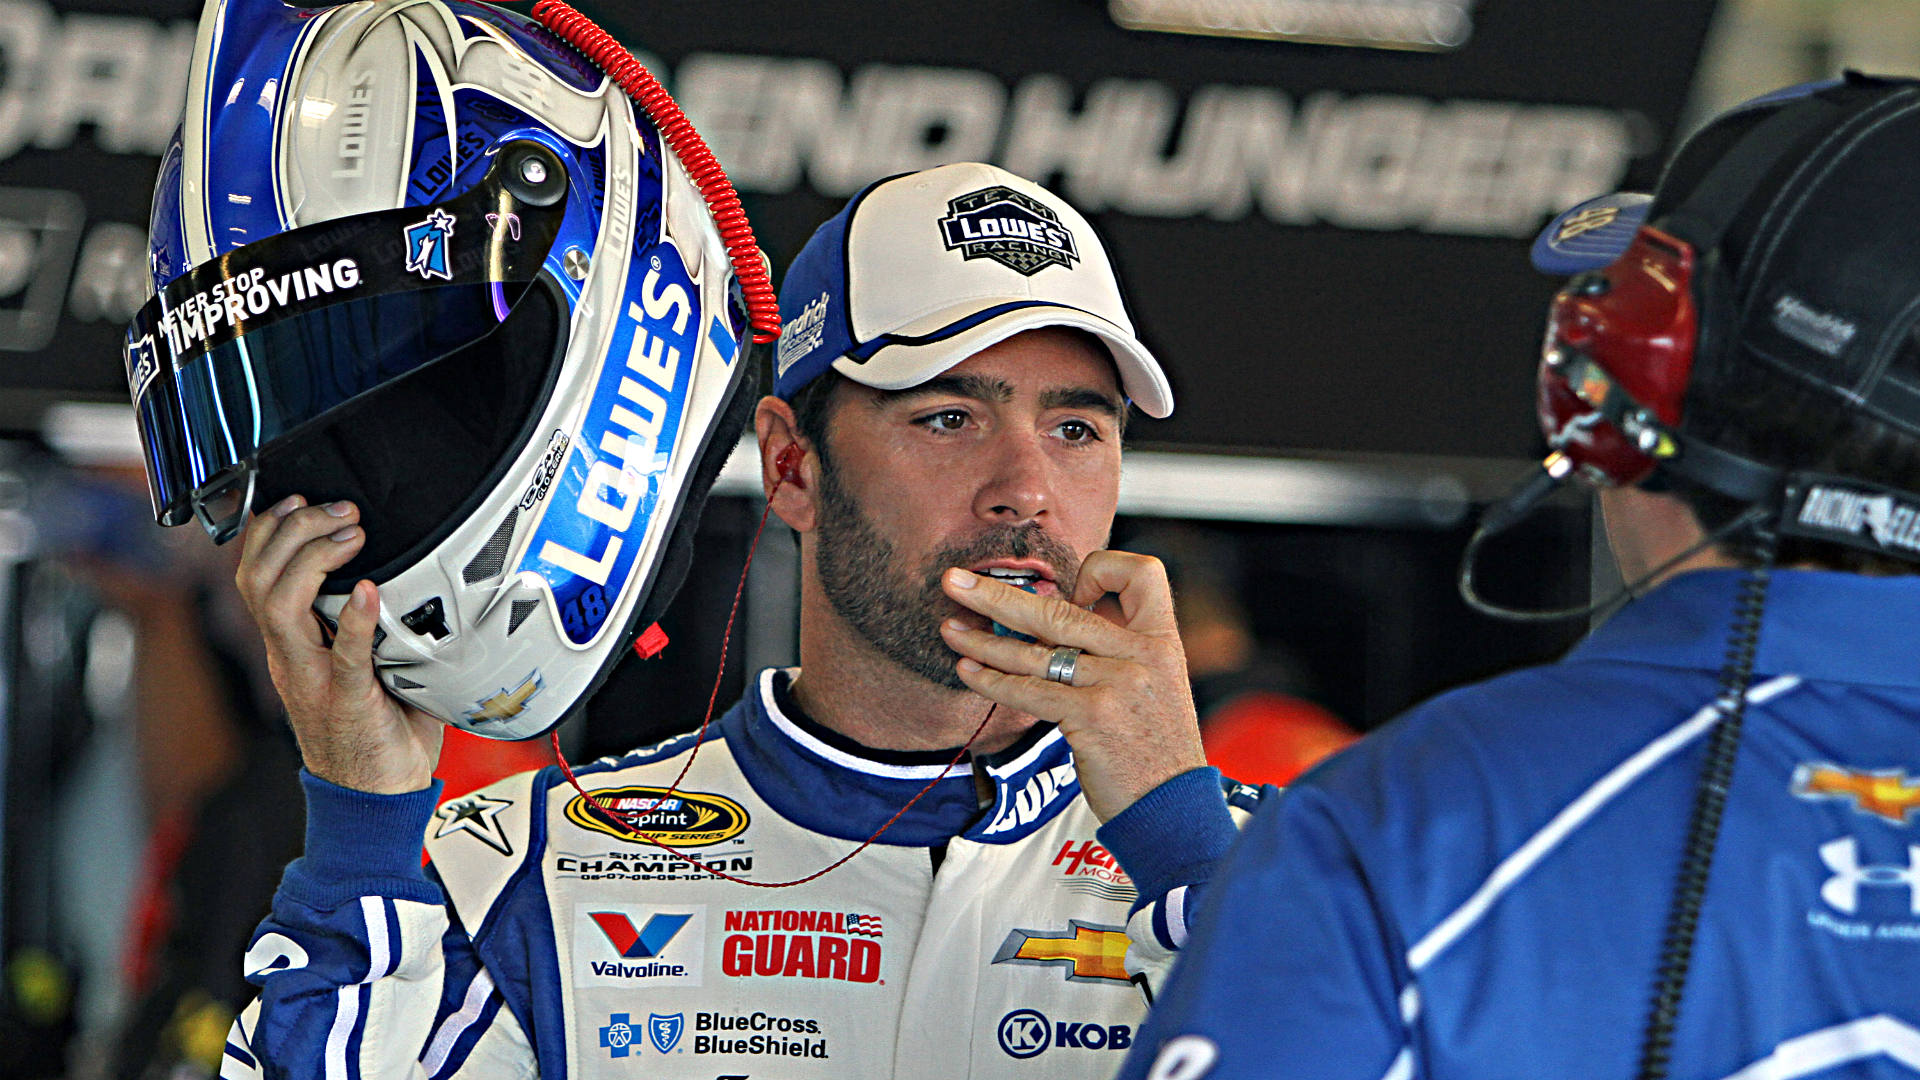 Jimmie-Johnson-FTR-070114-AP